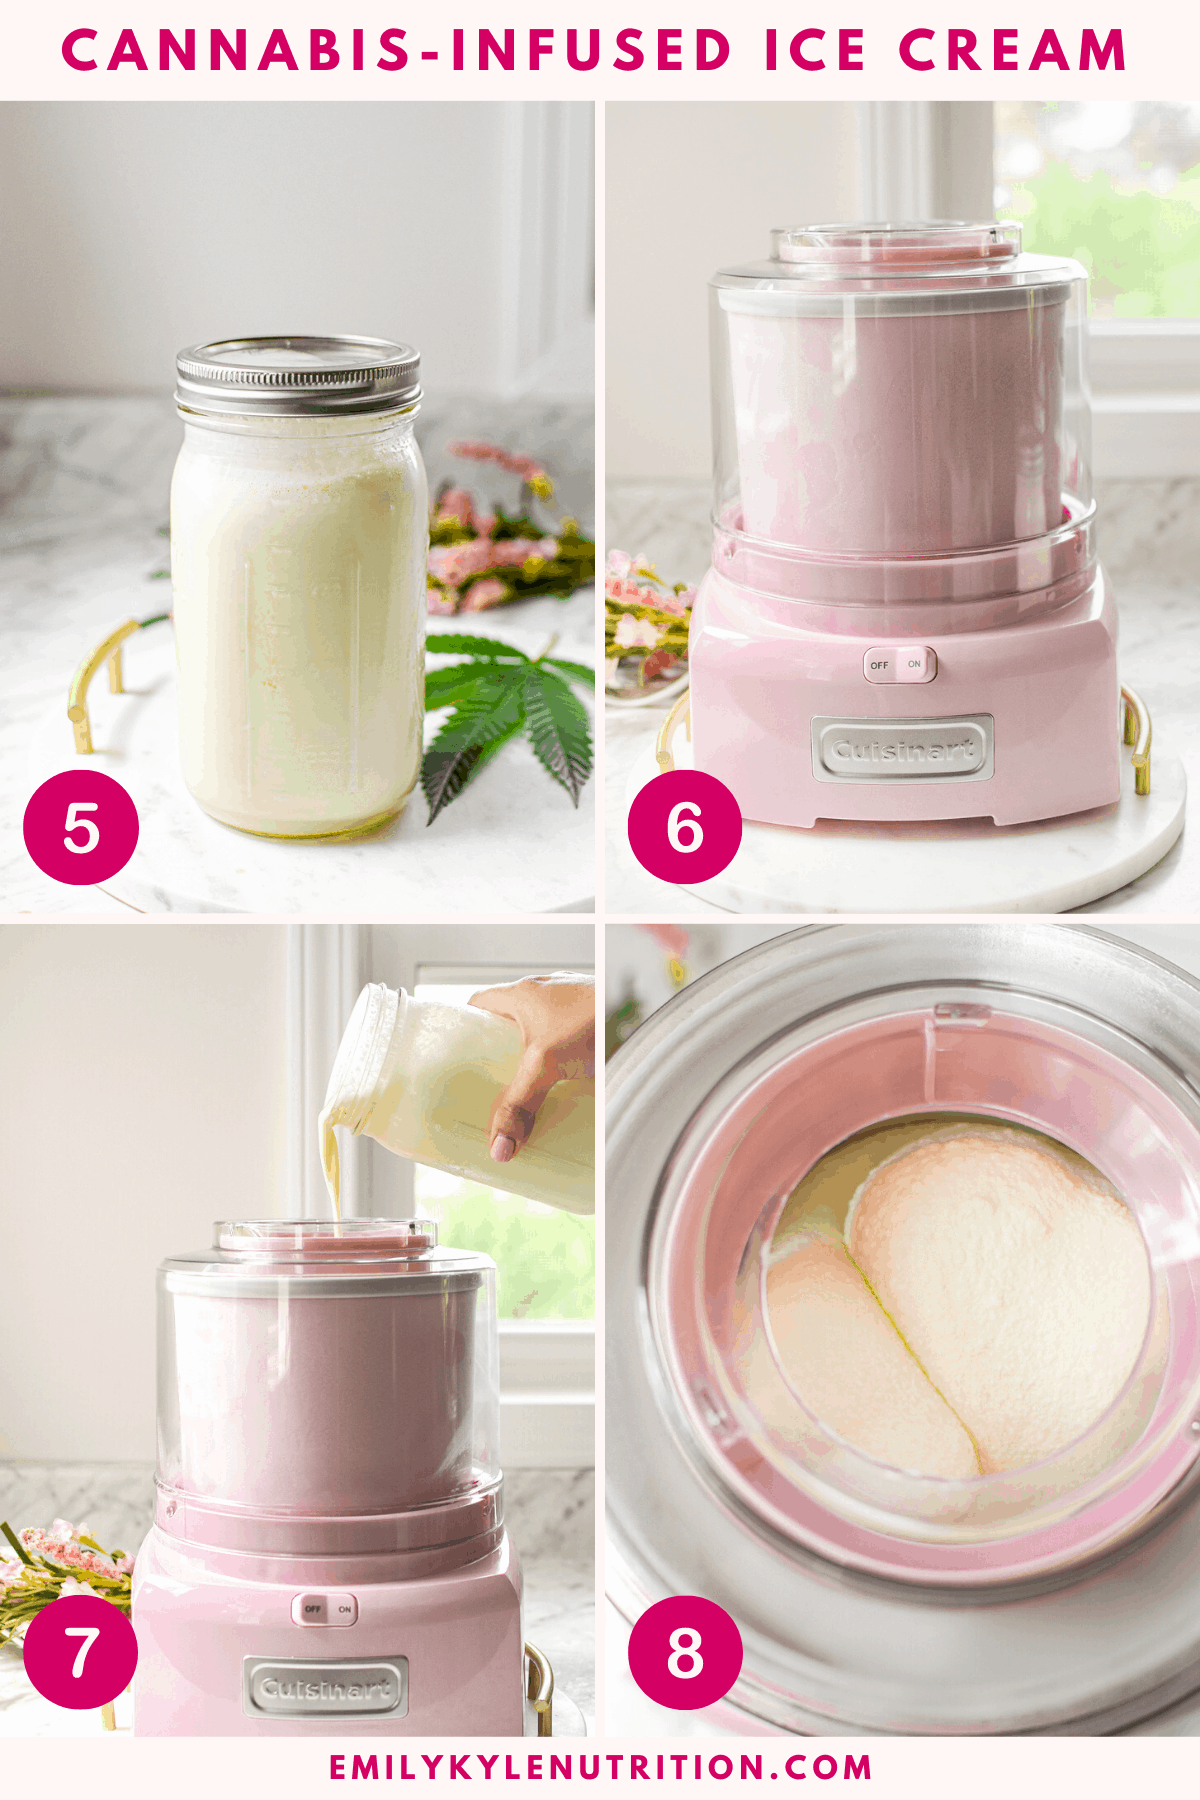 A collage shot of steps 1-4 showing how to make cannabis ice cream